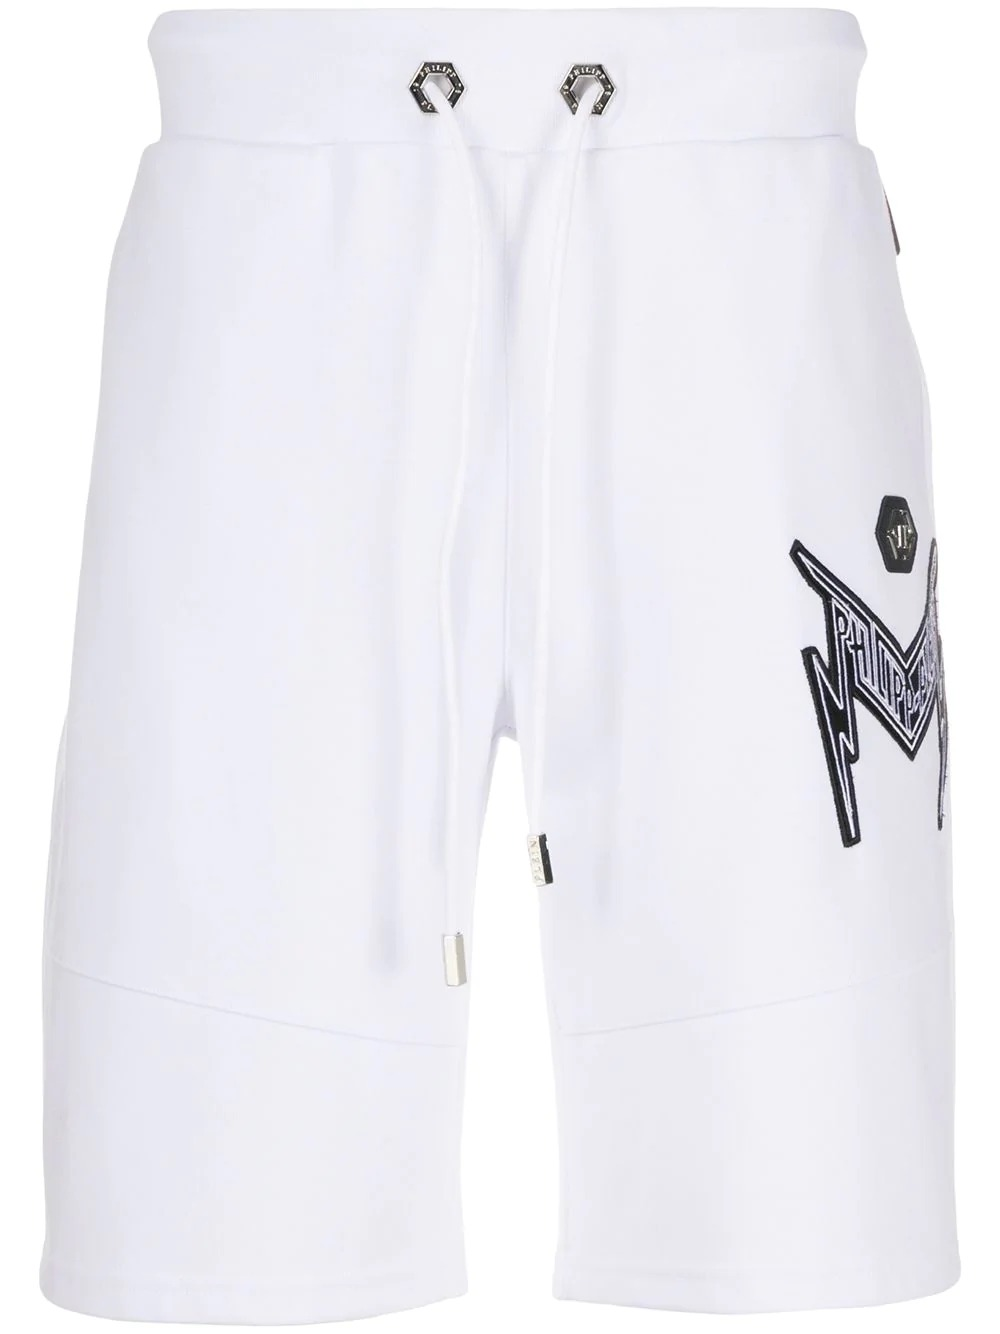 thunder logo embroidered track shorts-philipp plein-simple caracters